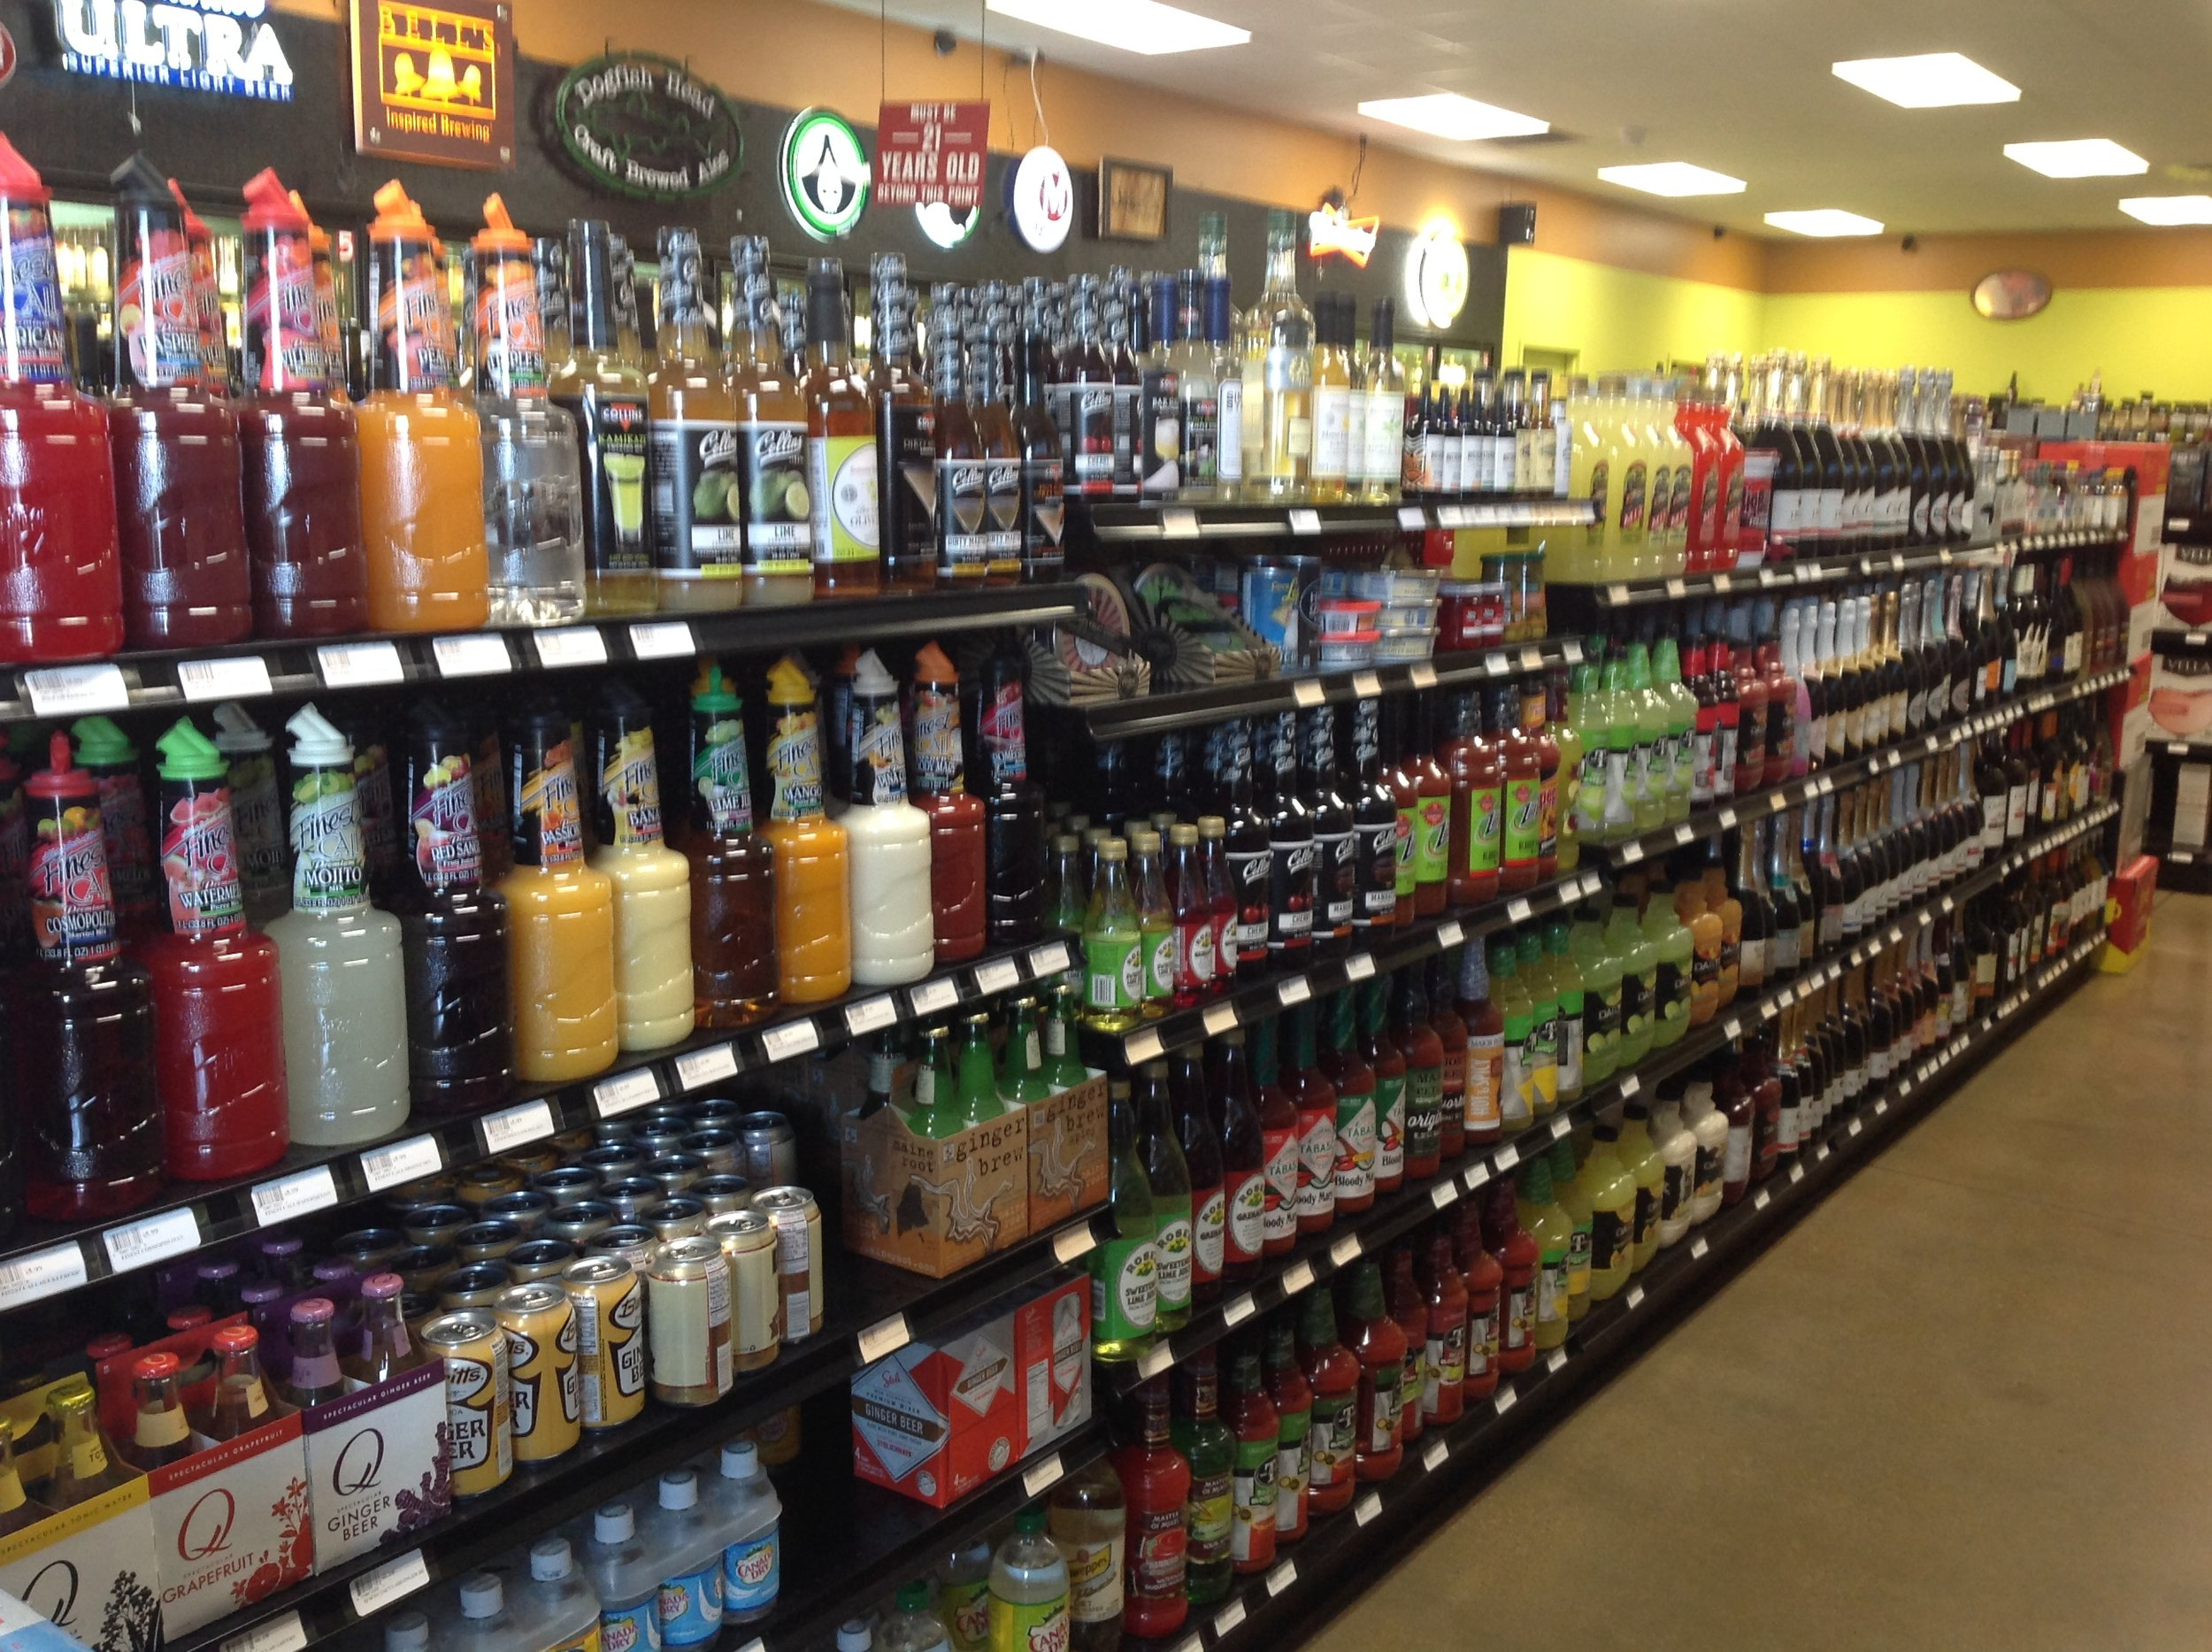 We have all the mixers, bitters and syrups you need to make the perfect drink! Feel free to ask the staff for suggestions!